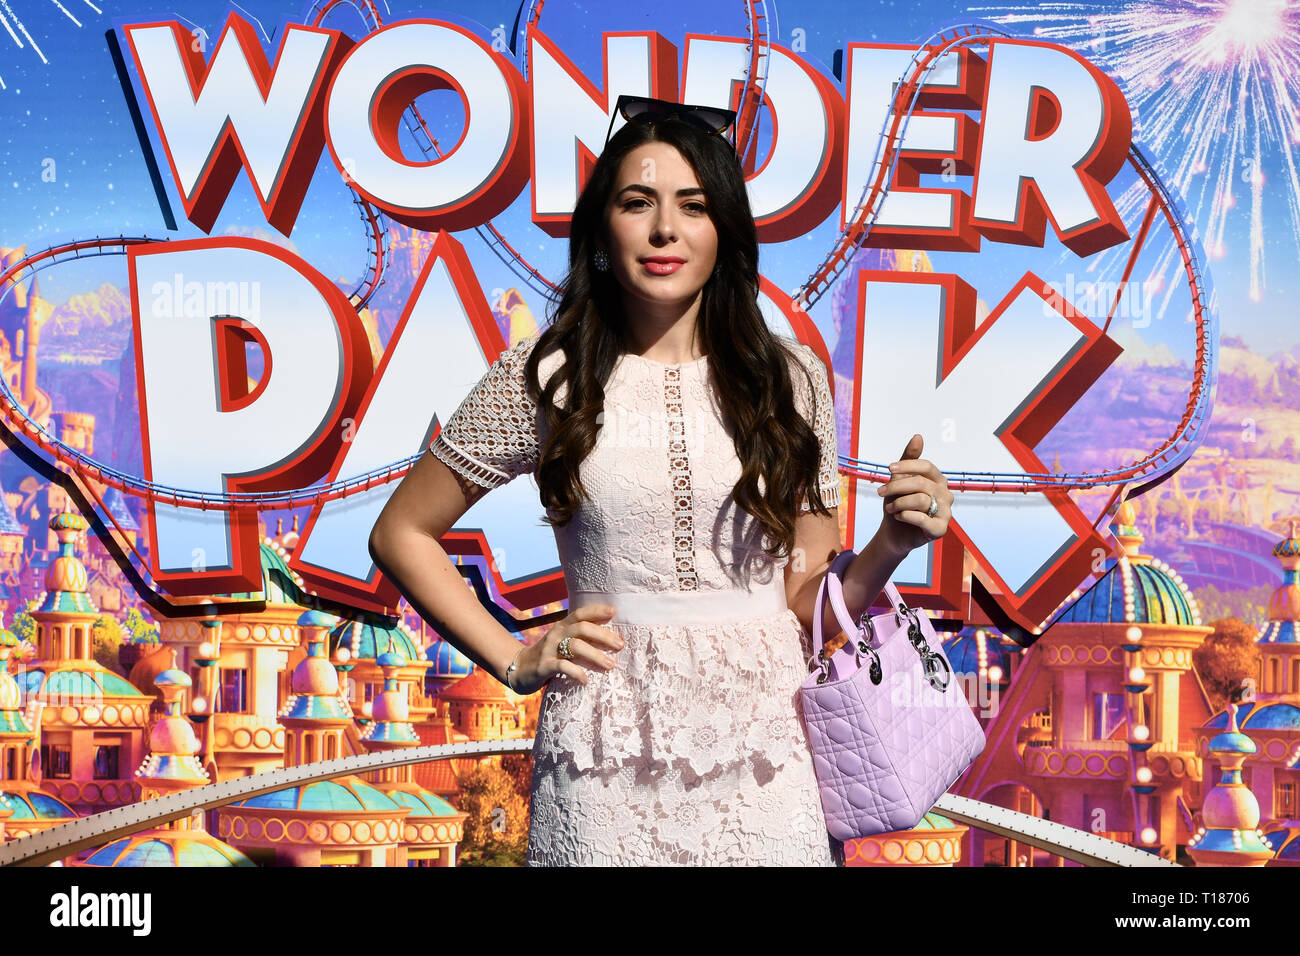 London, UK. 24th Mar 2019. WONDER PARK Gala Screening at Vue, Leicester Square, London on 24 March 2019, London, UK. Credit: Picture Capital/Alamy Live News - Stock Image